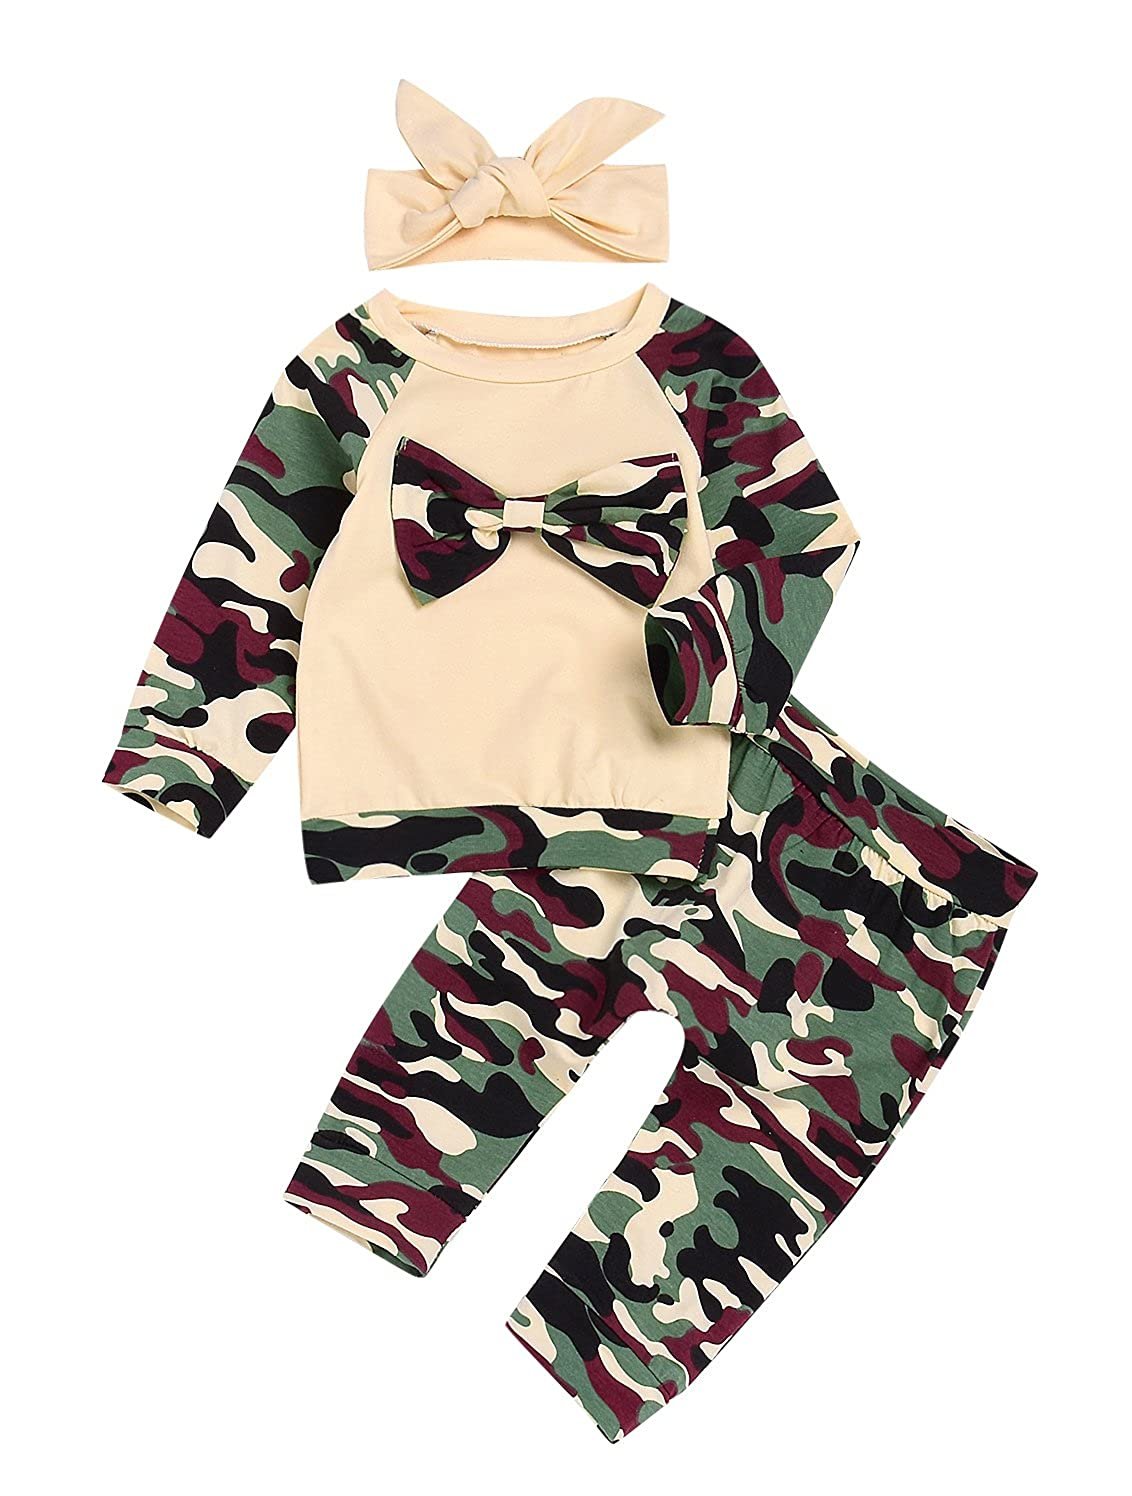 30ab9ab7a7e Amazon.com  Newborn Baby Boy Girls Camouflage Long Sleeve Tops+Long  Pants+Bowknot Headband Outfits Set Clothes  Clothing